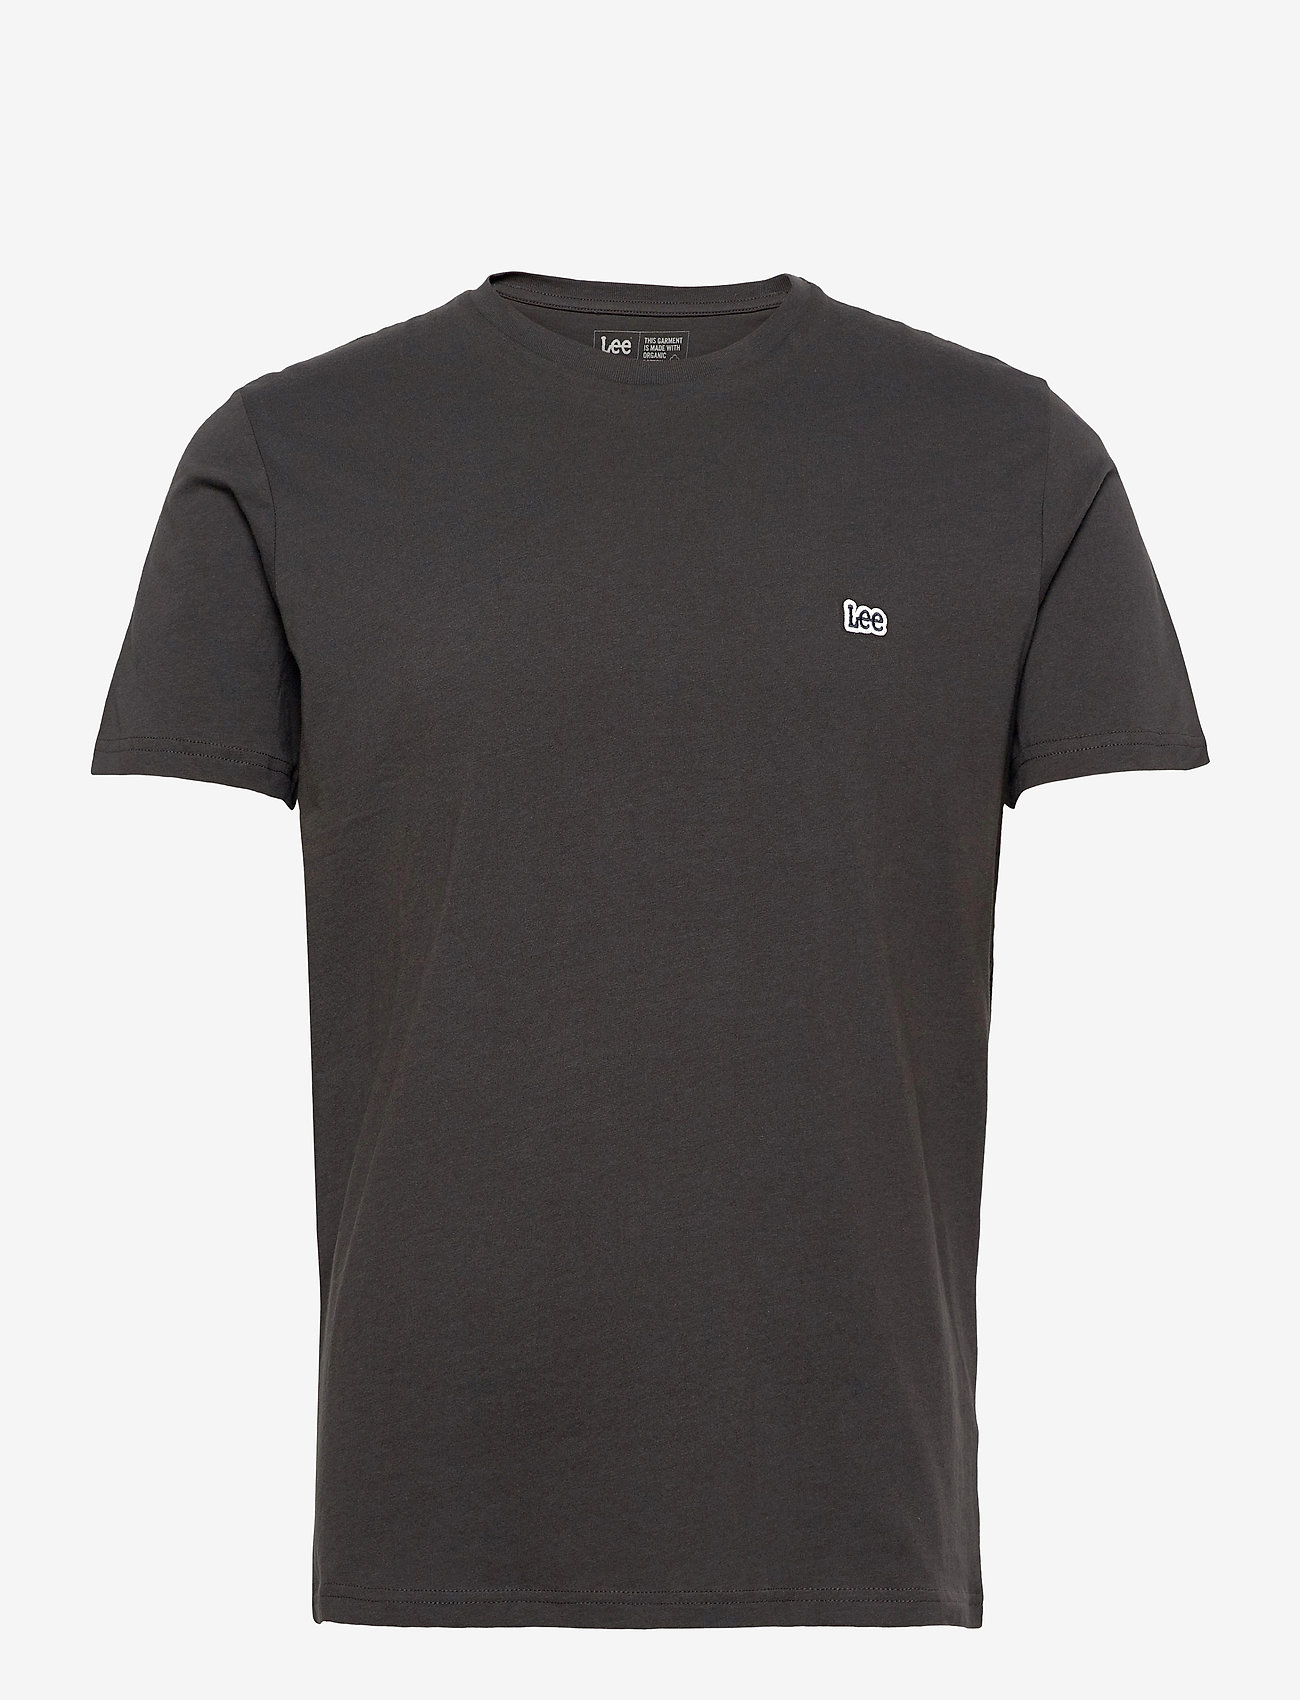 Lee Jeans - SS PATCH LOGO TEE - basic t-shirts - washed black - 0